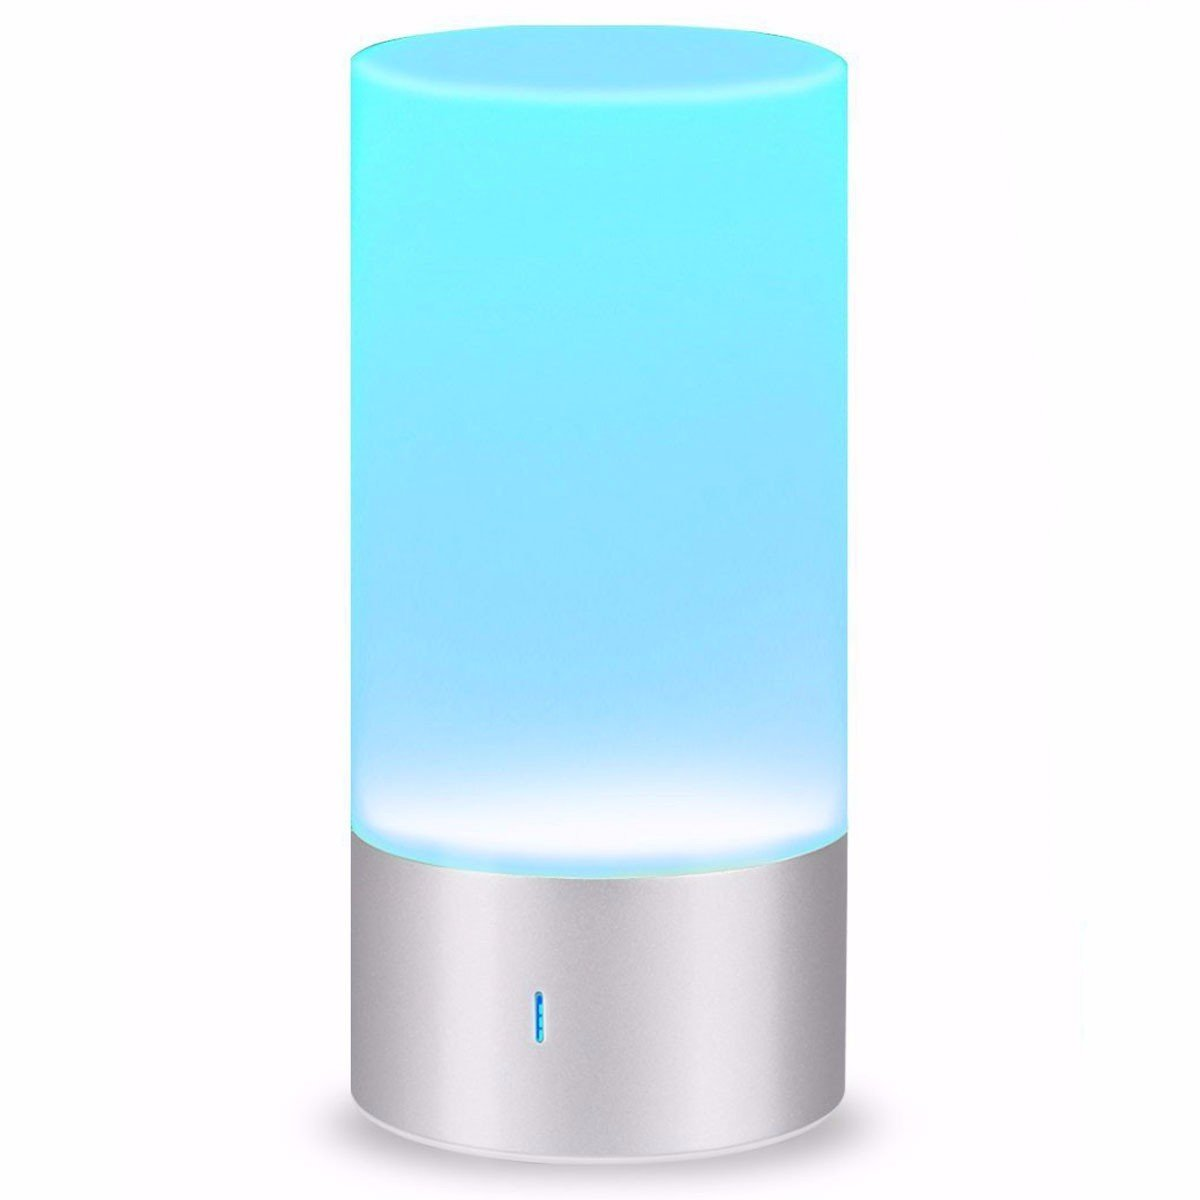 LED Bedside Lamp,ELEGIANT Smart Touch Table Lamp with Wireless Speaker,LED Colour Changing Mood Lamp Support Warm White Light & Dimmable RGB Color Change for Home Party Wedding